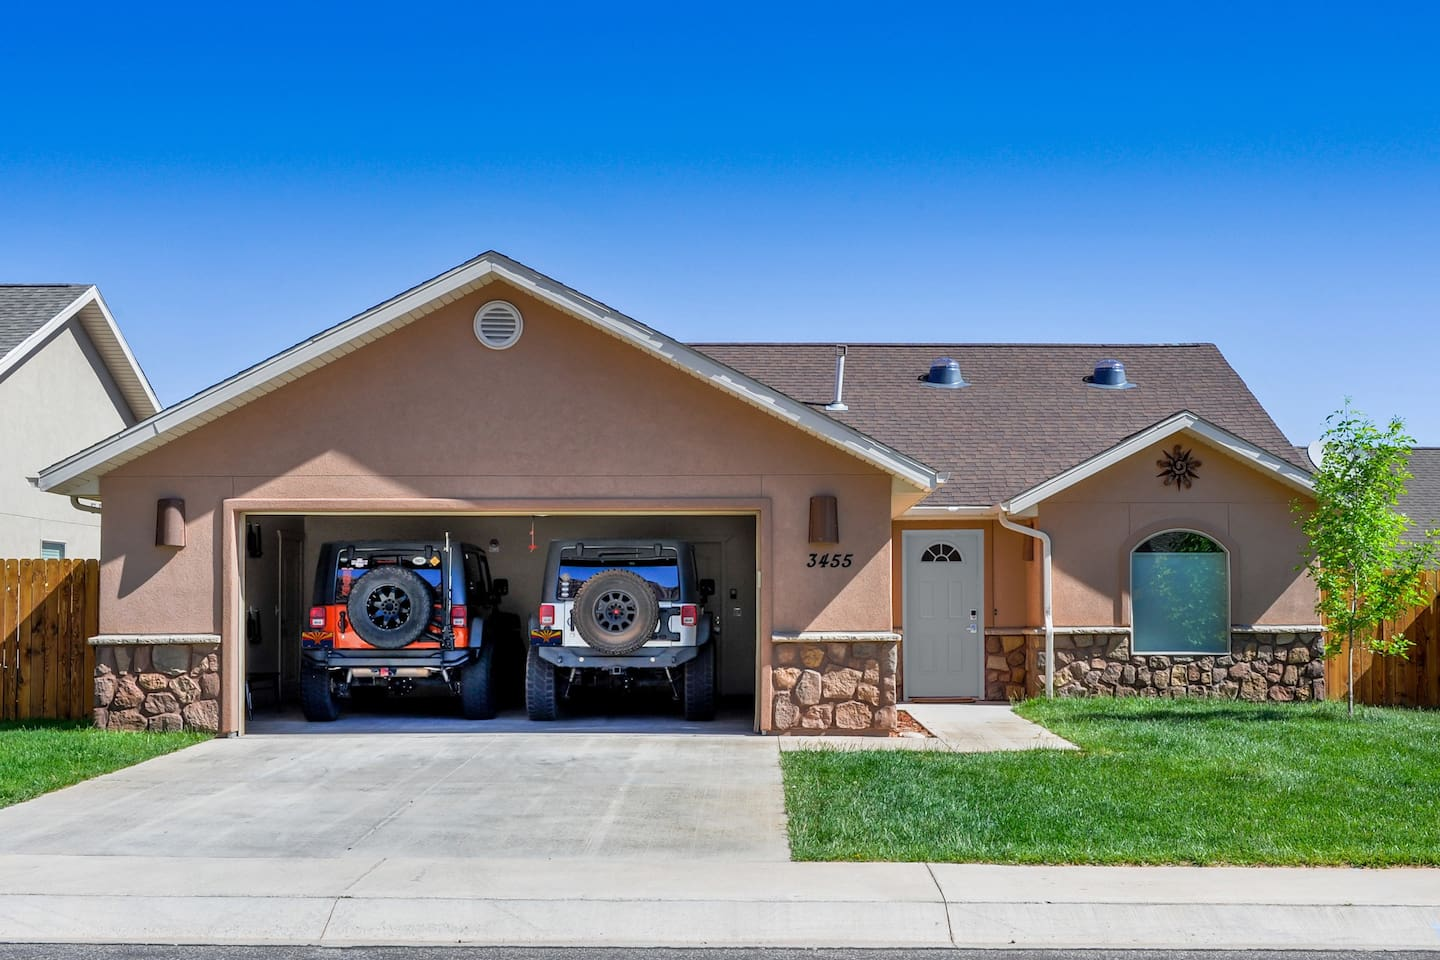 Stay at our detached, single family home with plenty of room for vehicles, bikes and ATVs.